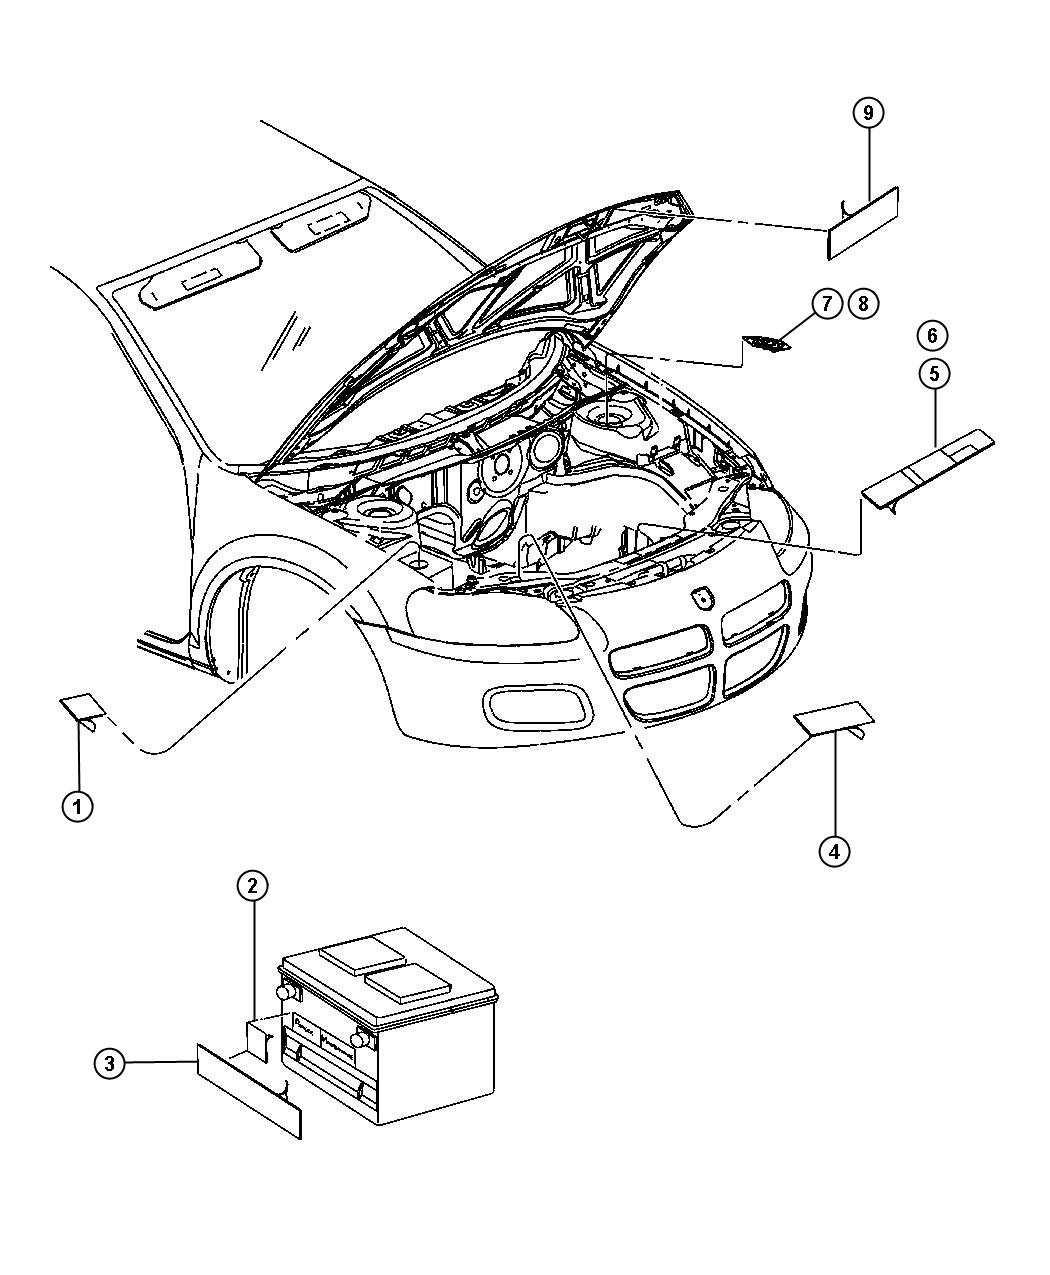 Chrysler Sebring Label Air Conditioning System Canada